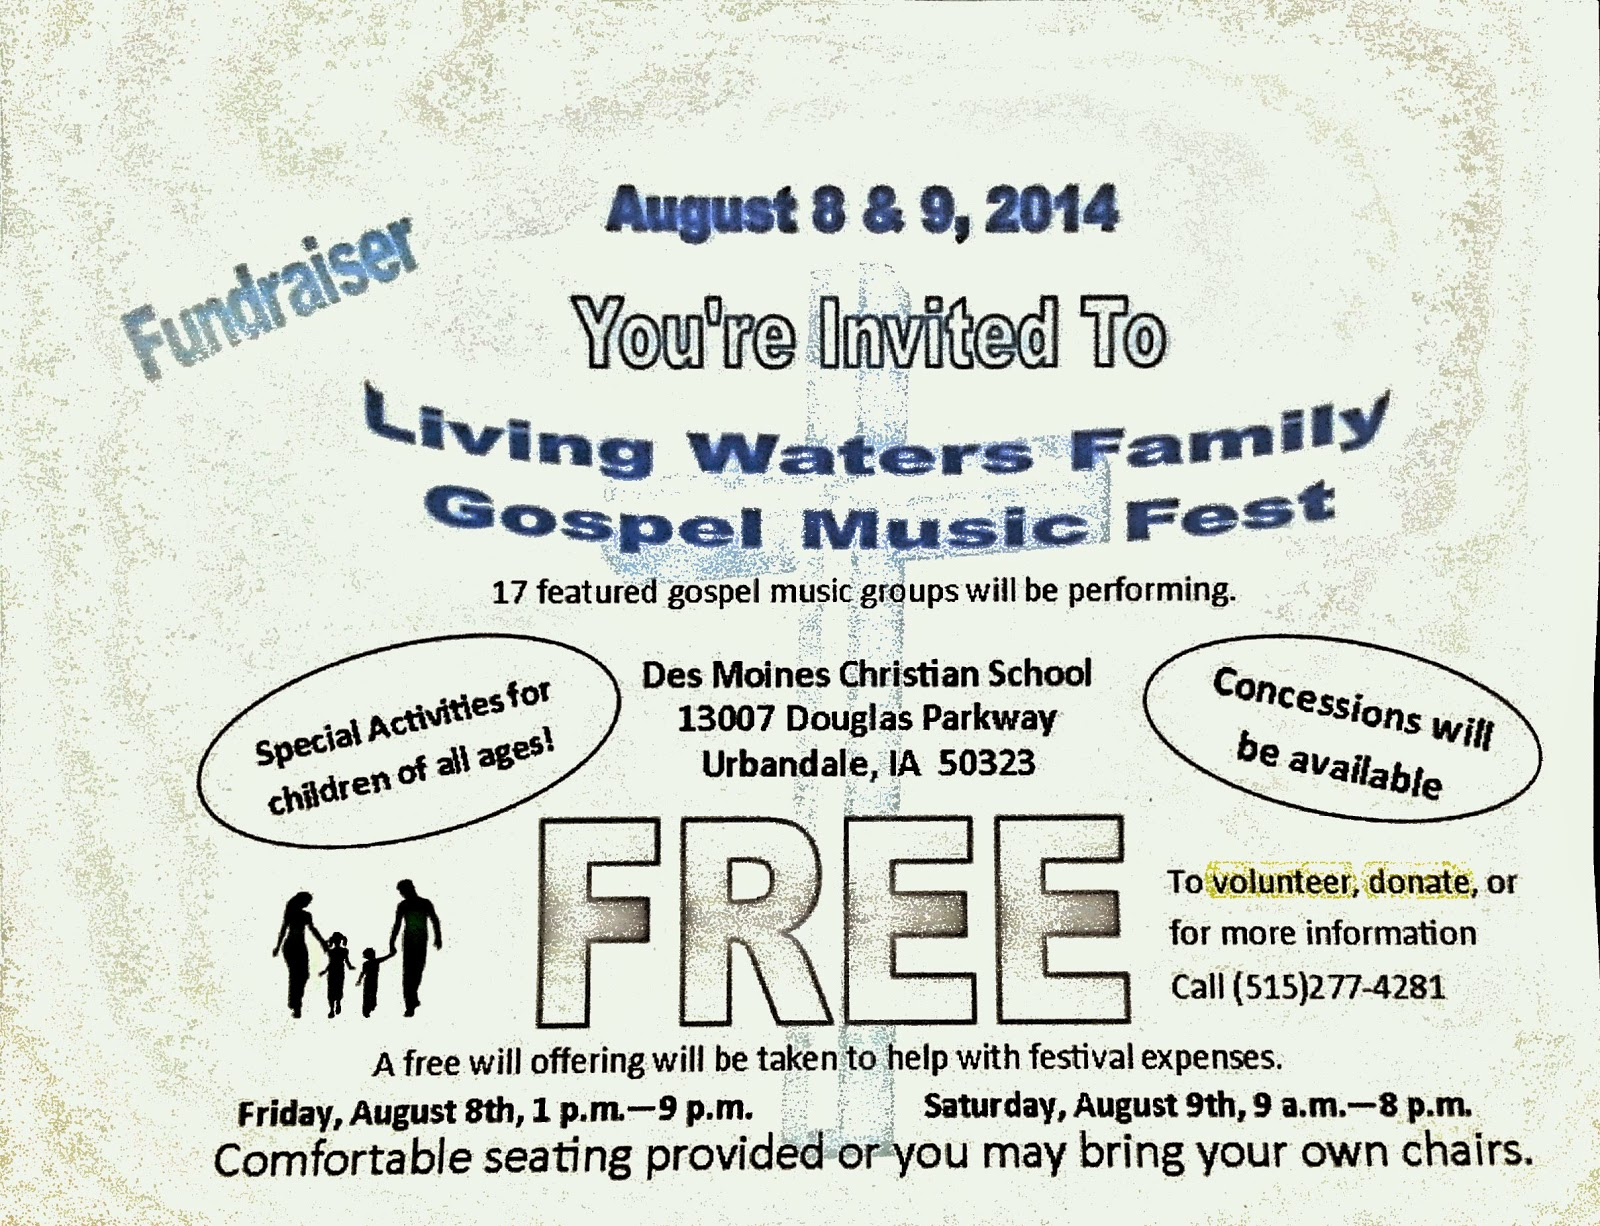 Living Waters Family Gospel Music Fest